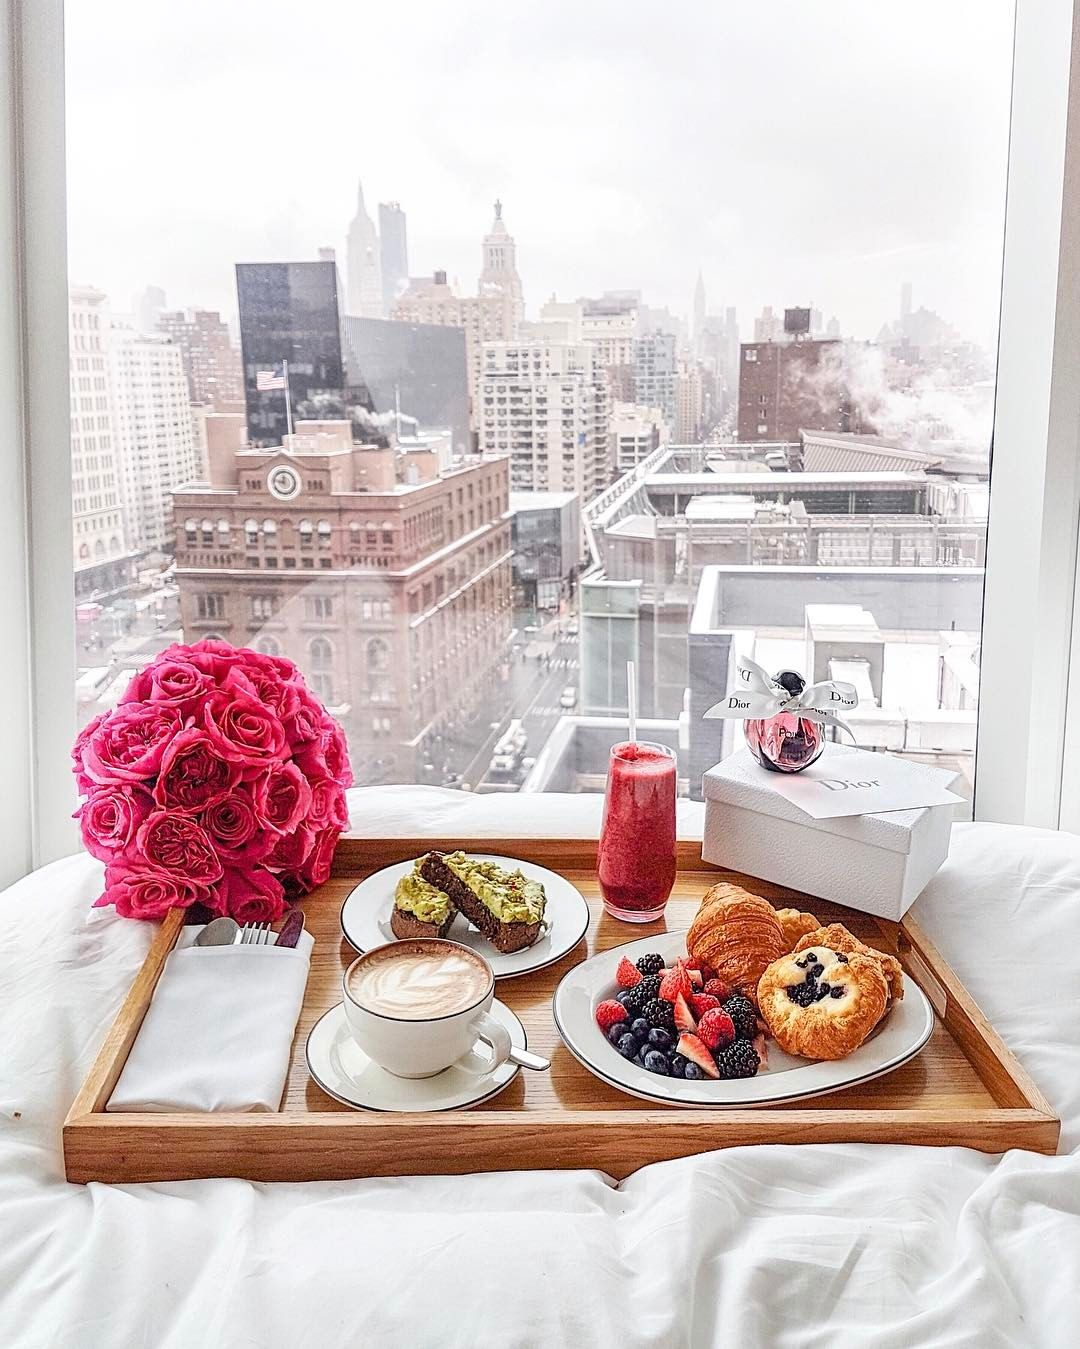 """53.5k Likes, 758 Comments - Leonie Hanne (@ohhcouture) on Instagram: """"Late breakfast in bed while it's snowing outside... Find a new post about my trip to NY with @dior…"""""""